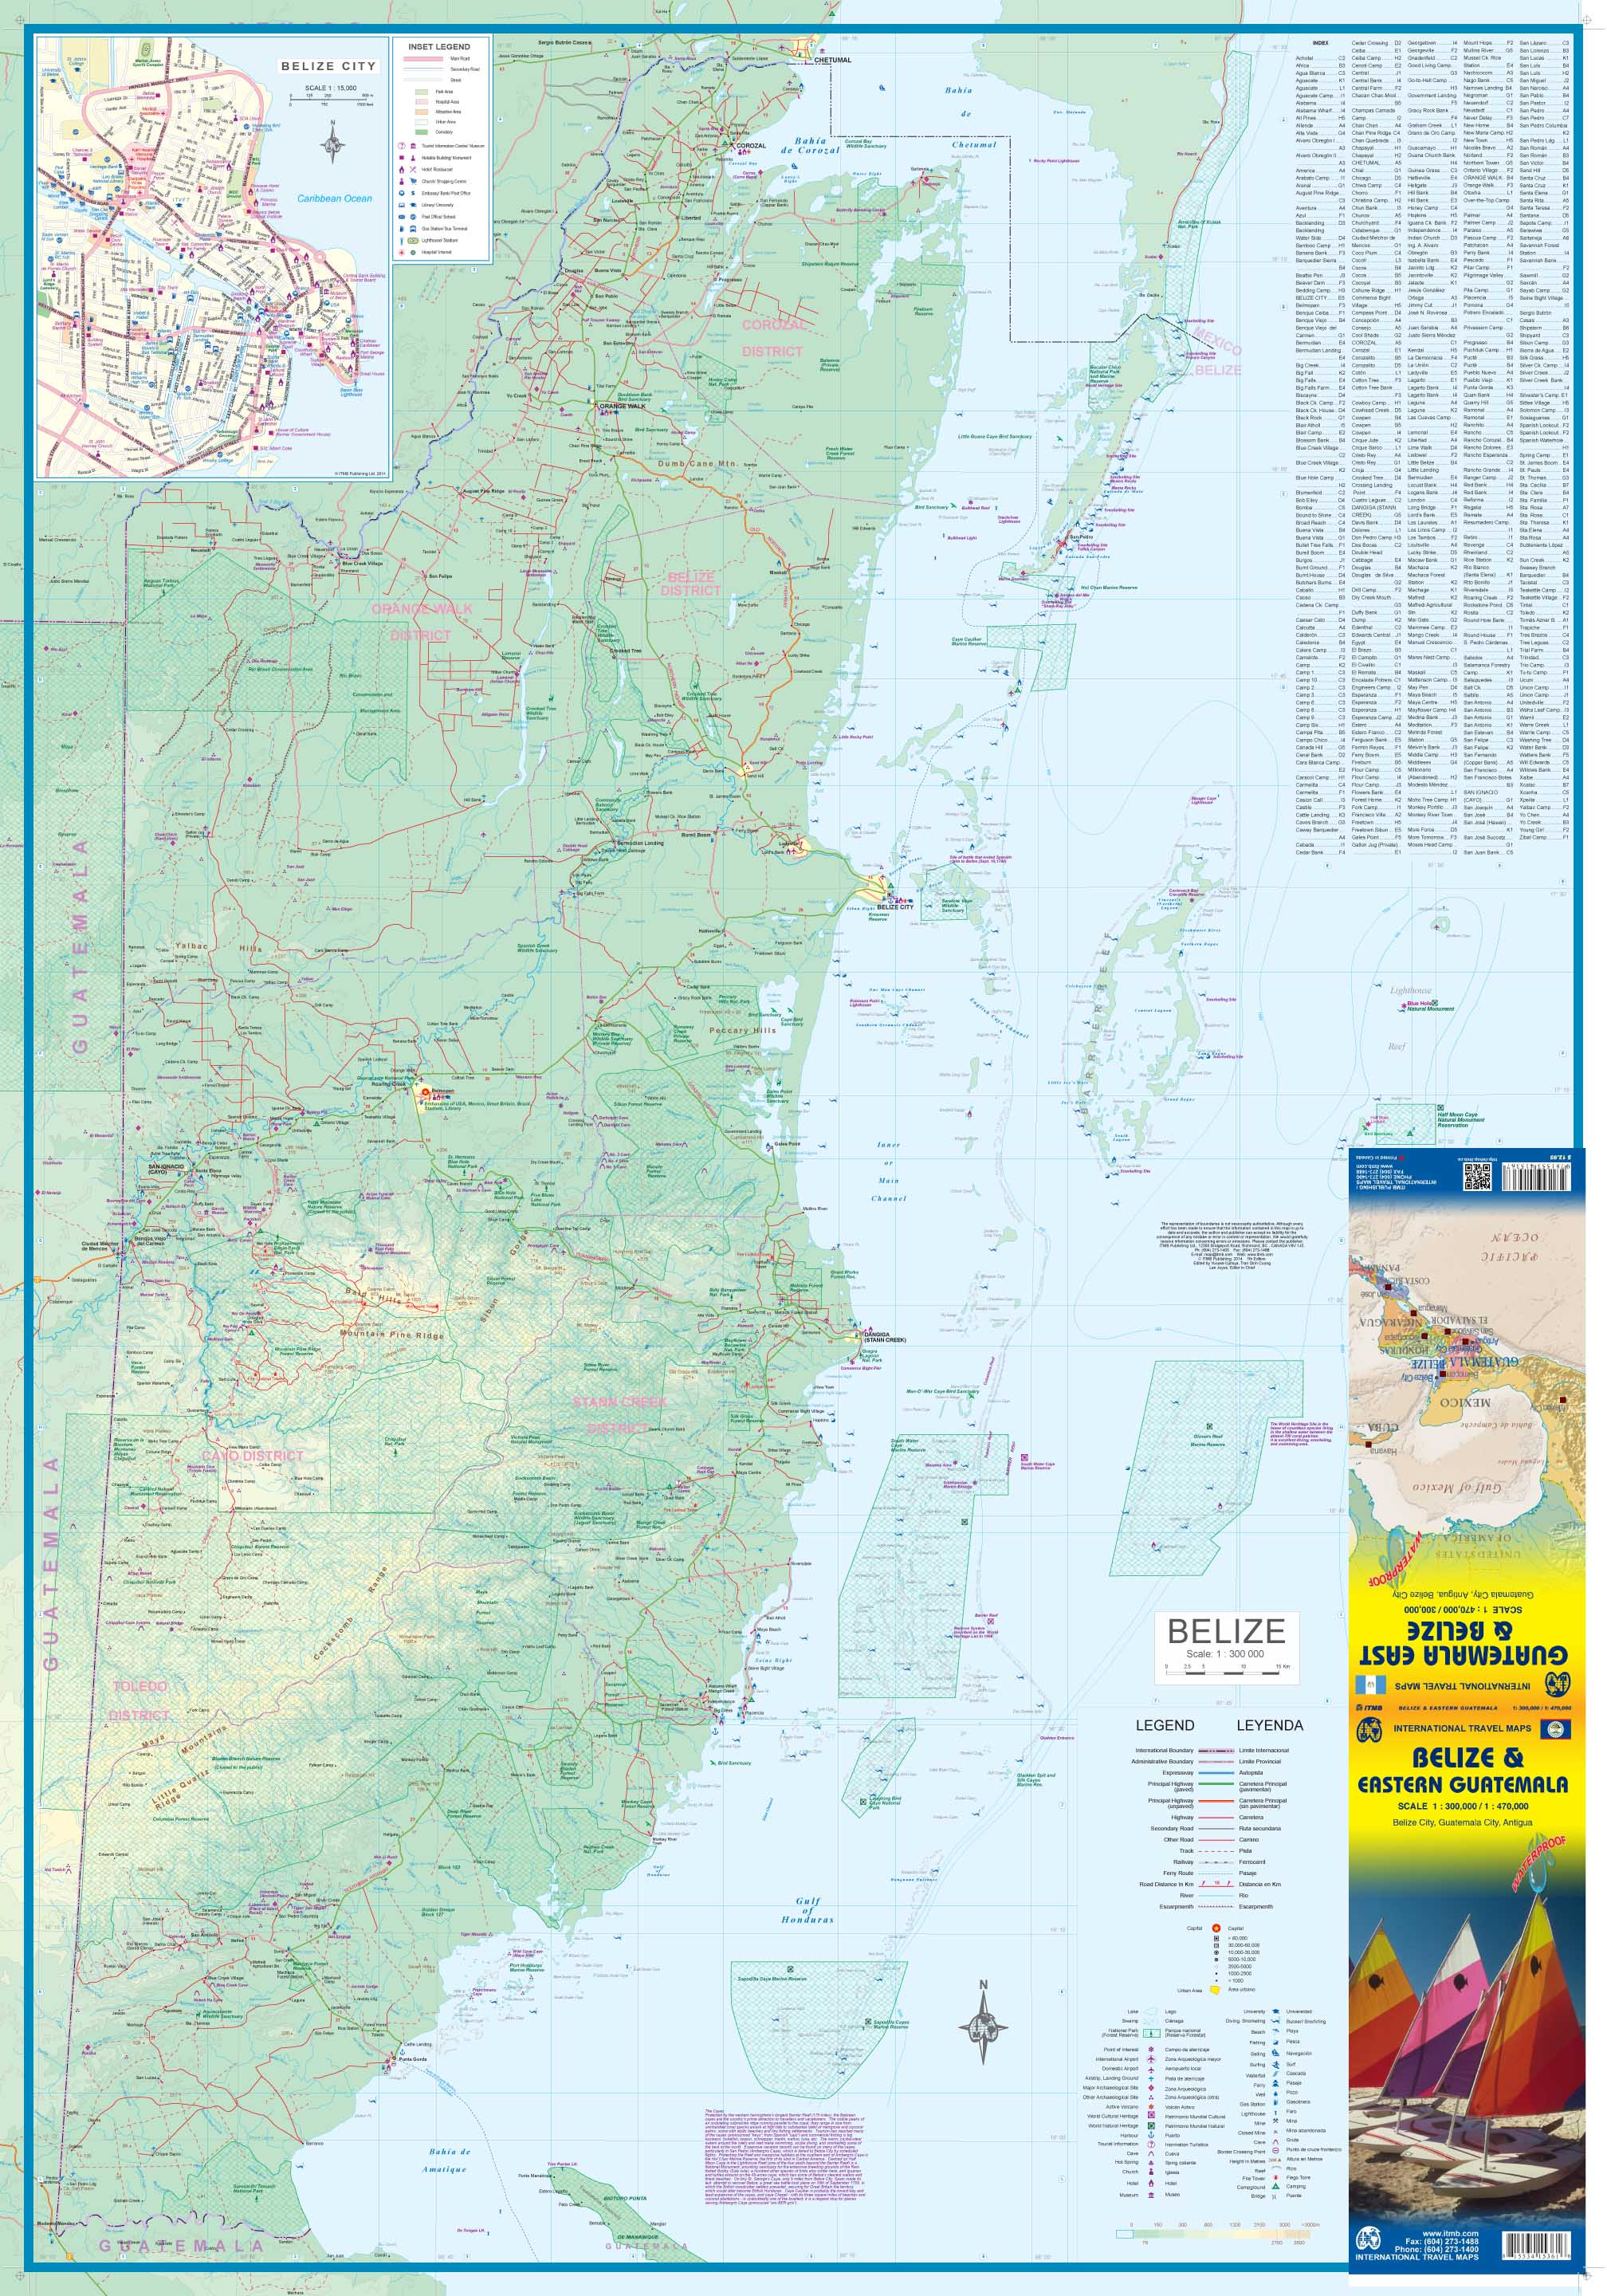 Maps for travel City Maps Road Maps Guides Globes Topographic – Belize Travel Map